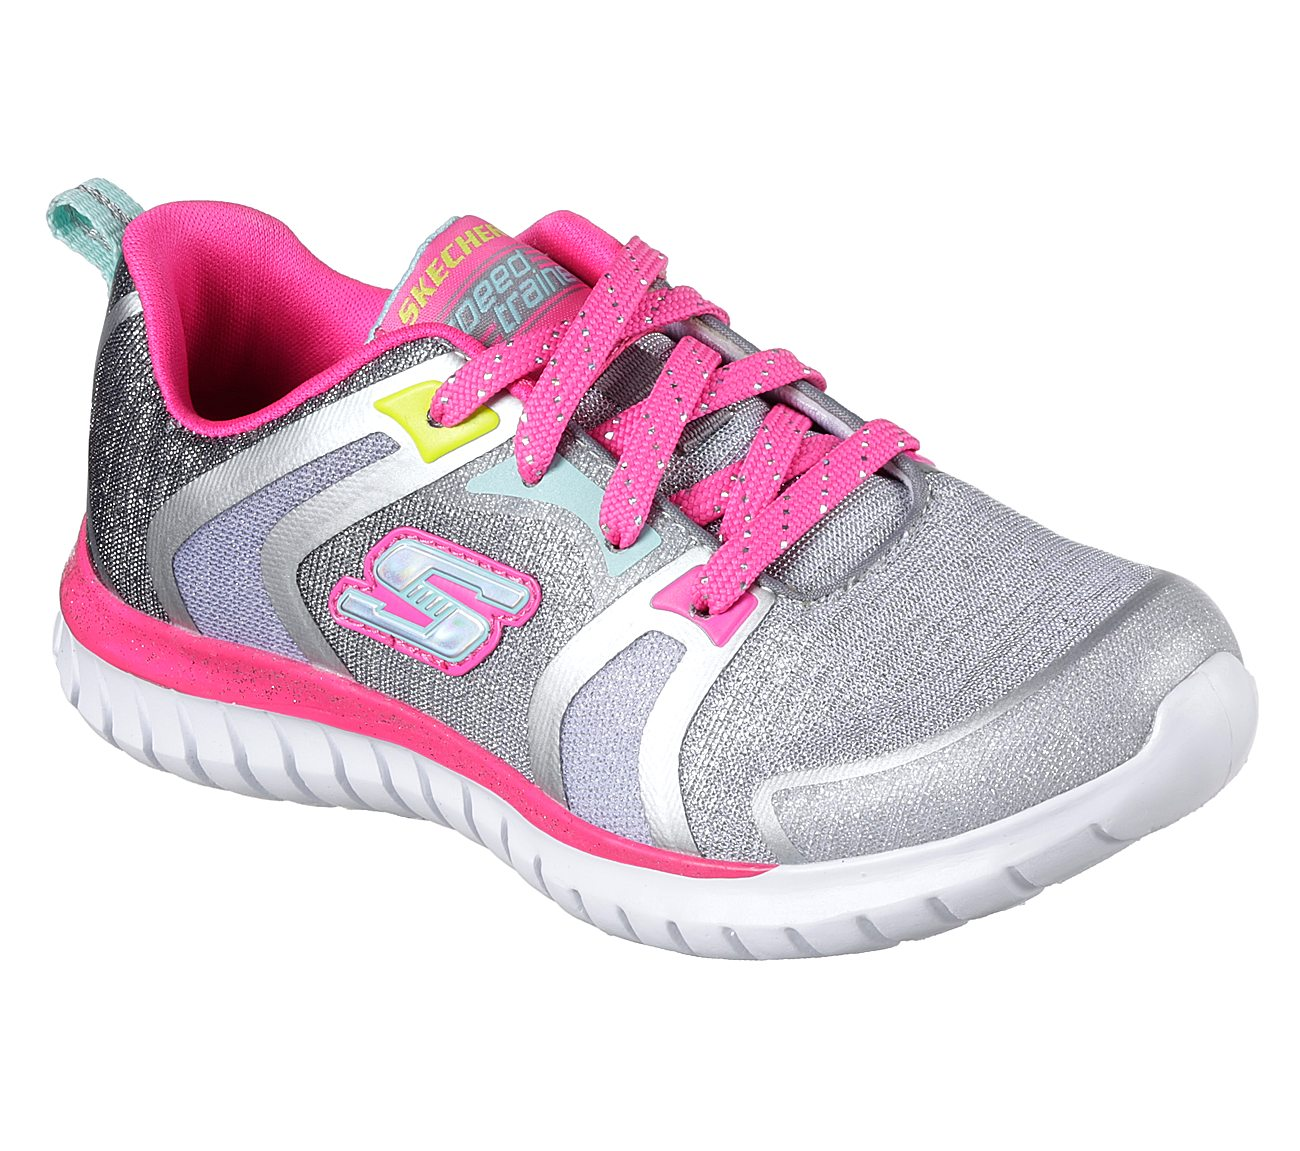 ad7be452d0e15 Buy SKECHERS Speed Trainer Sport Shoes only $45.00